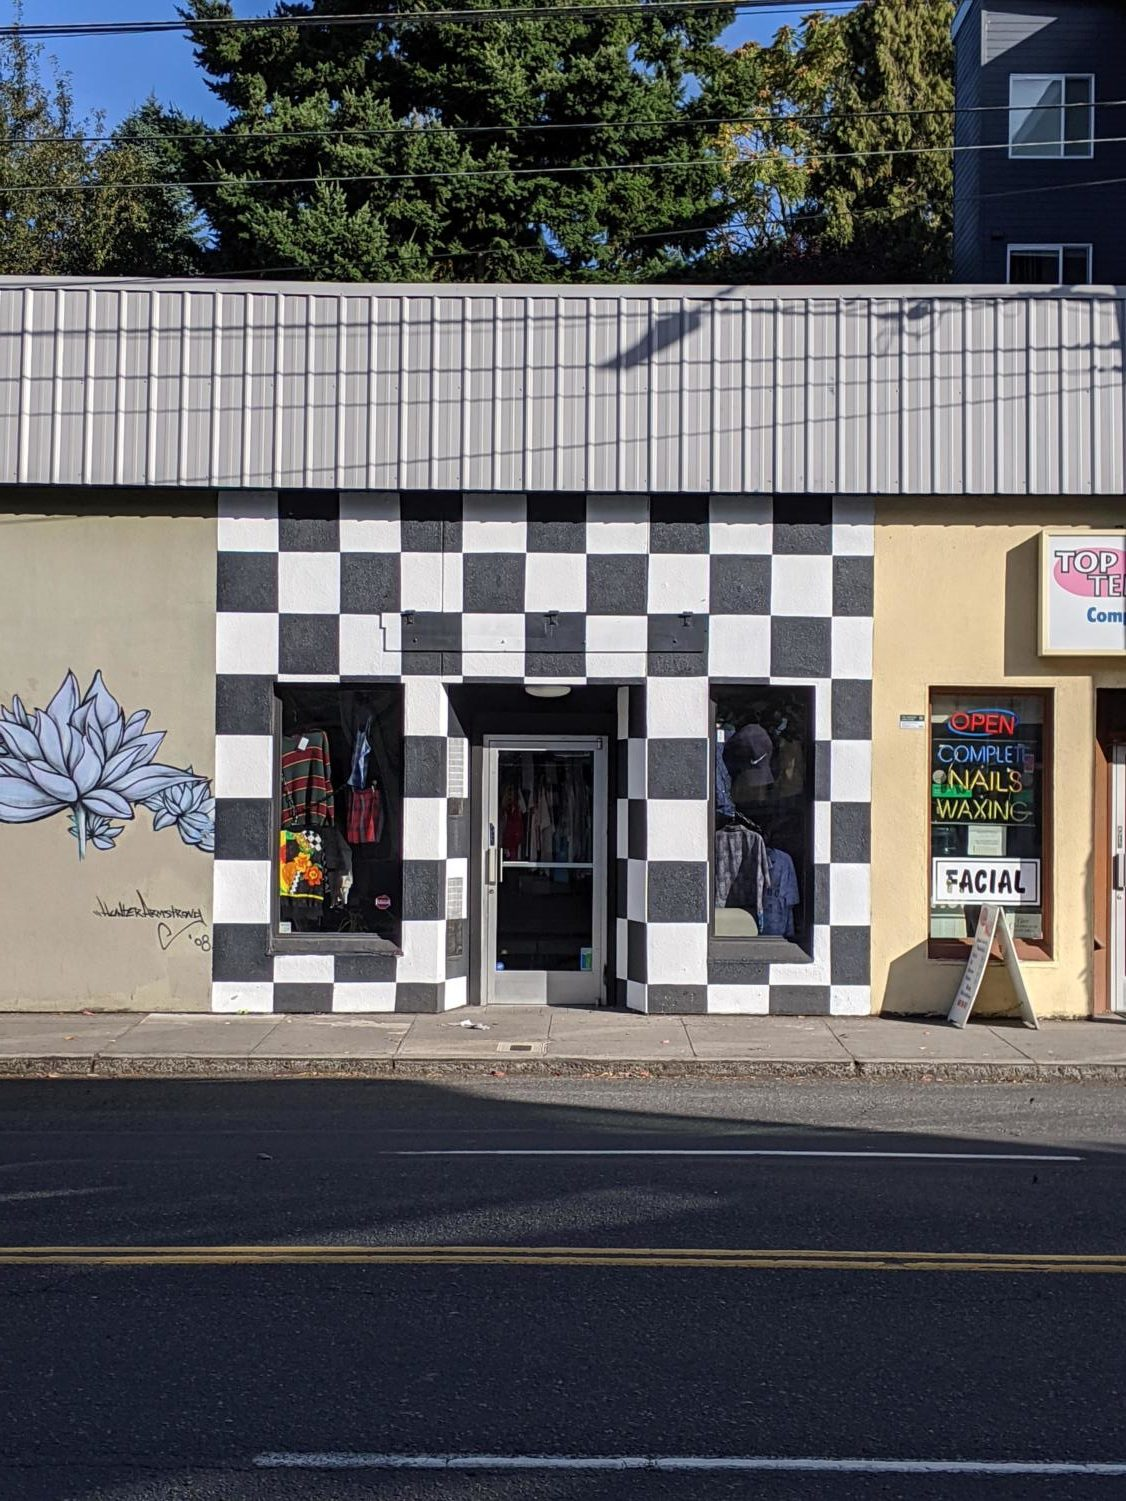 Hawthorne's Focus Group Shop has a bright checkerboard pattern that makes it quickly recognizable to passing pedestrians.